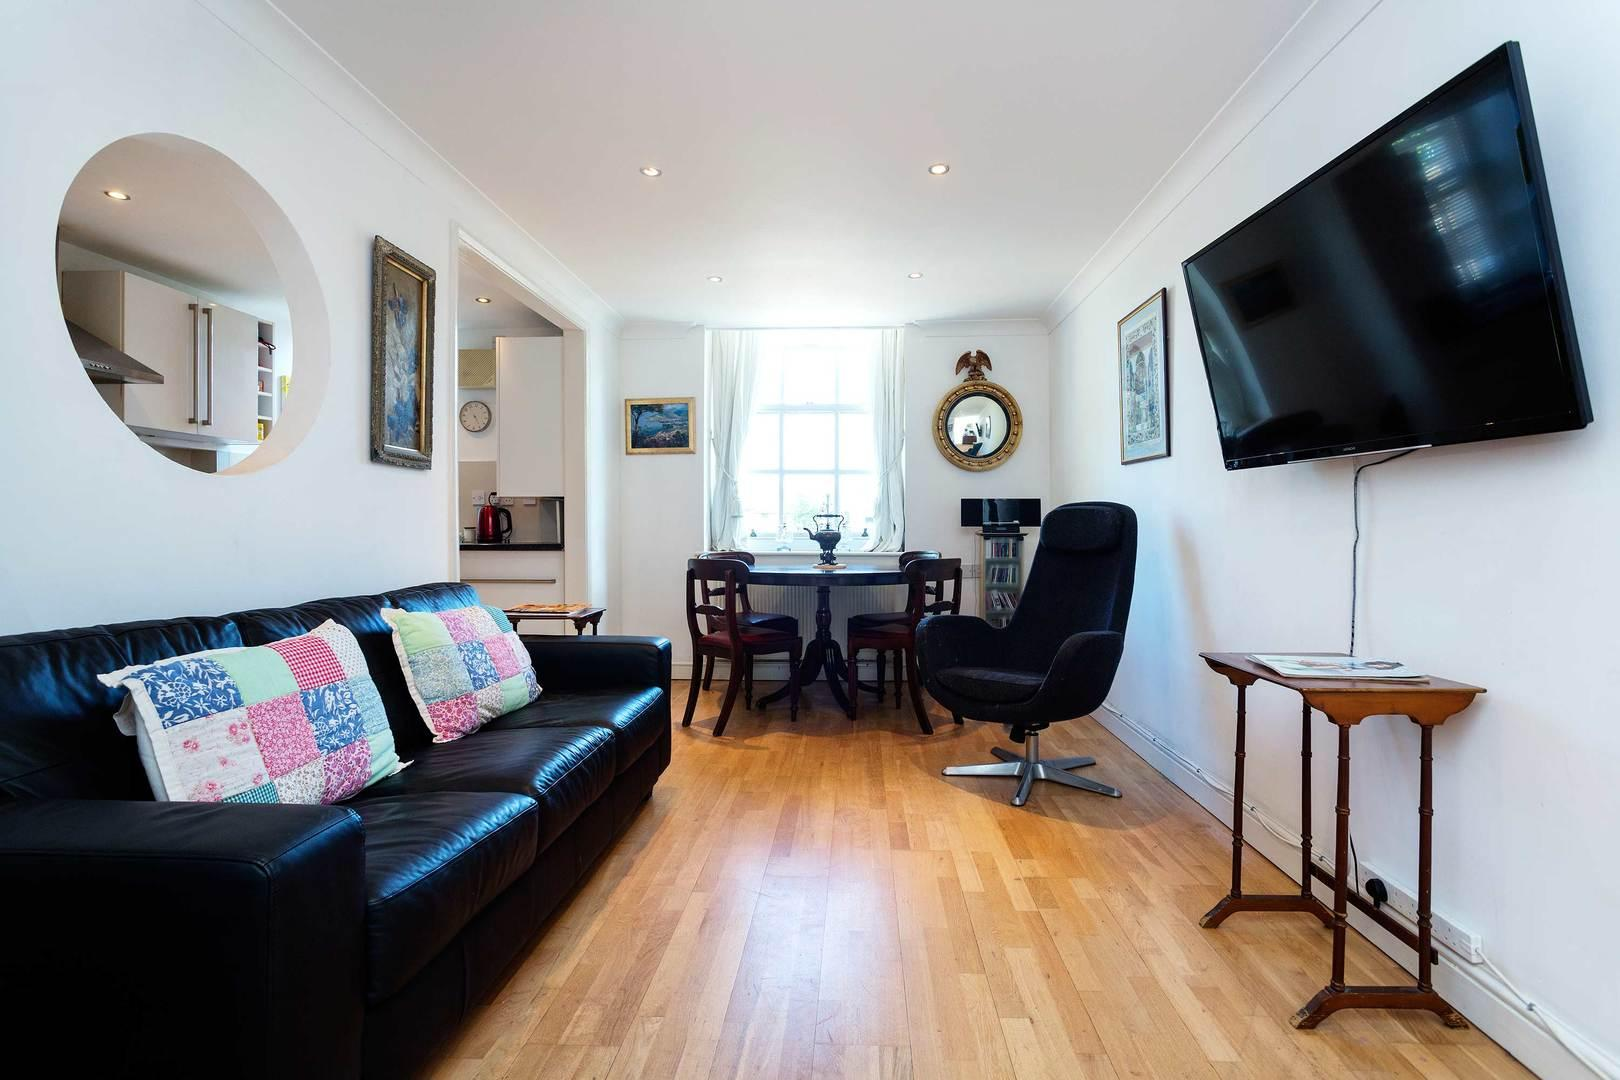 Property Image 2 - Classic Chic Notting Hill Apartment with Private Garden